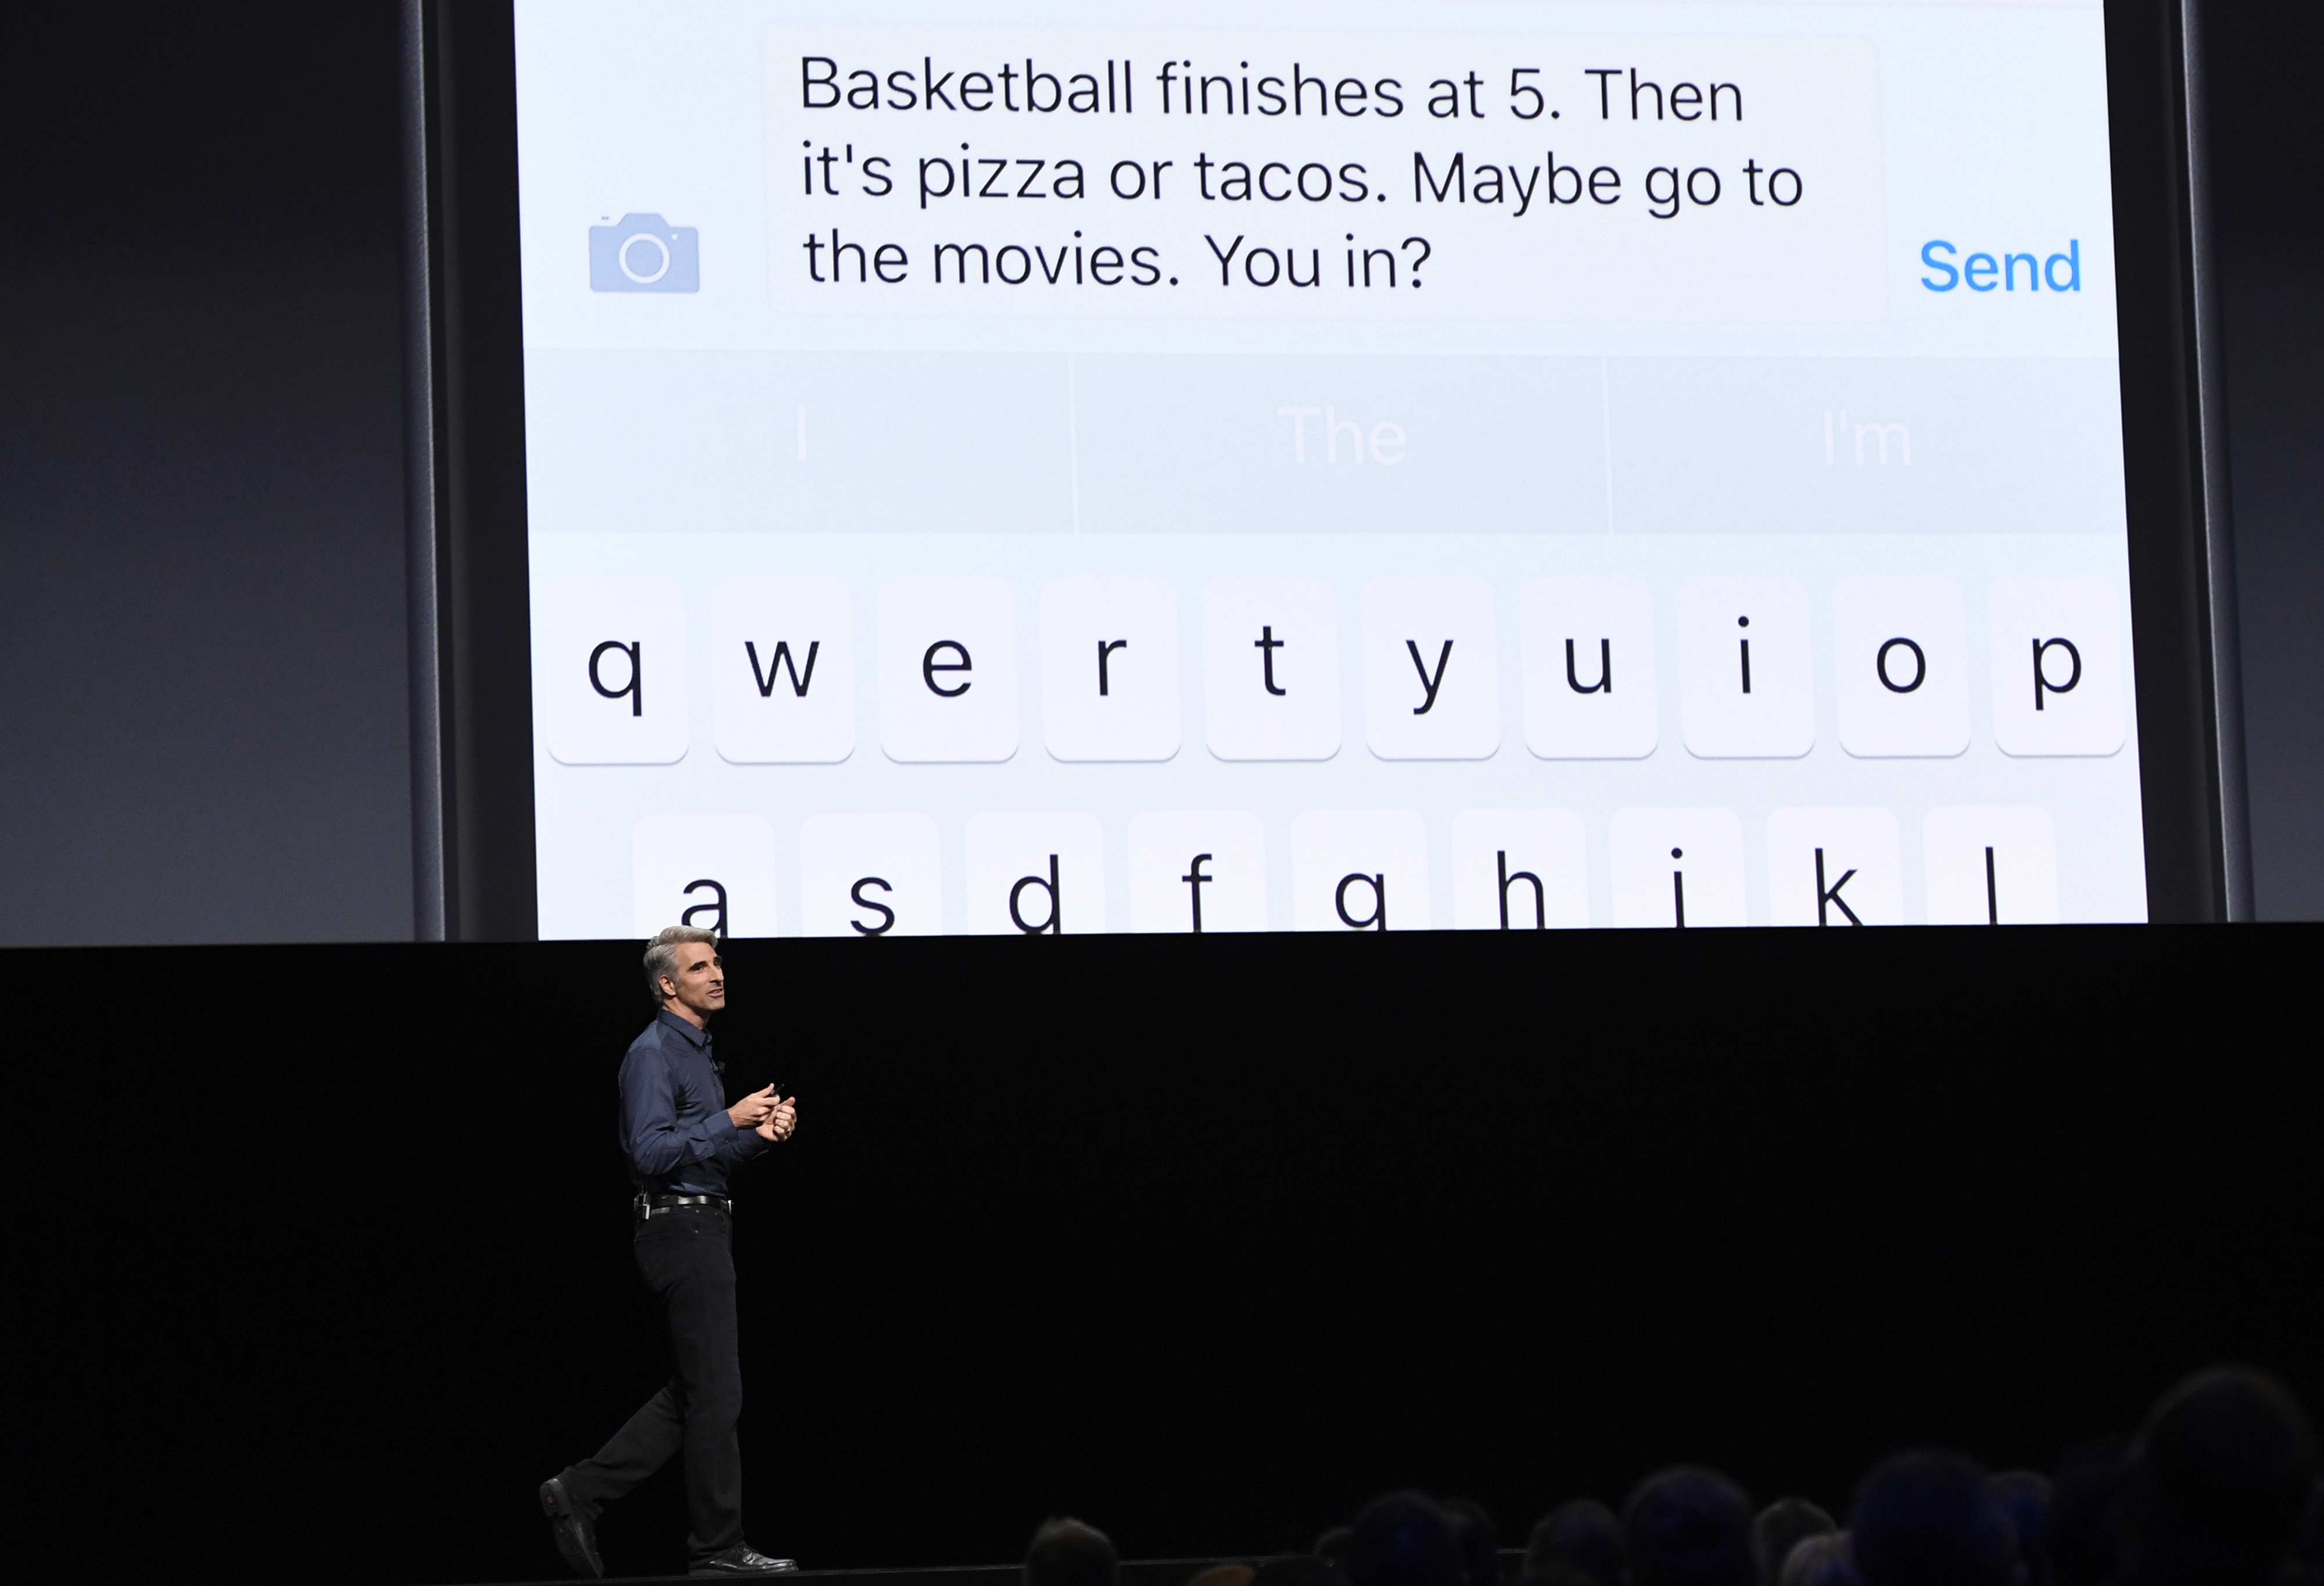 Craig Federighi, senior vice president of Software Engineering at Apple Inc., speaks during the Apple World Wide Developers Conference (WWDC) in San Francisco, California, U.S., on Monday, June 13, 2016.